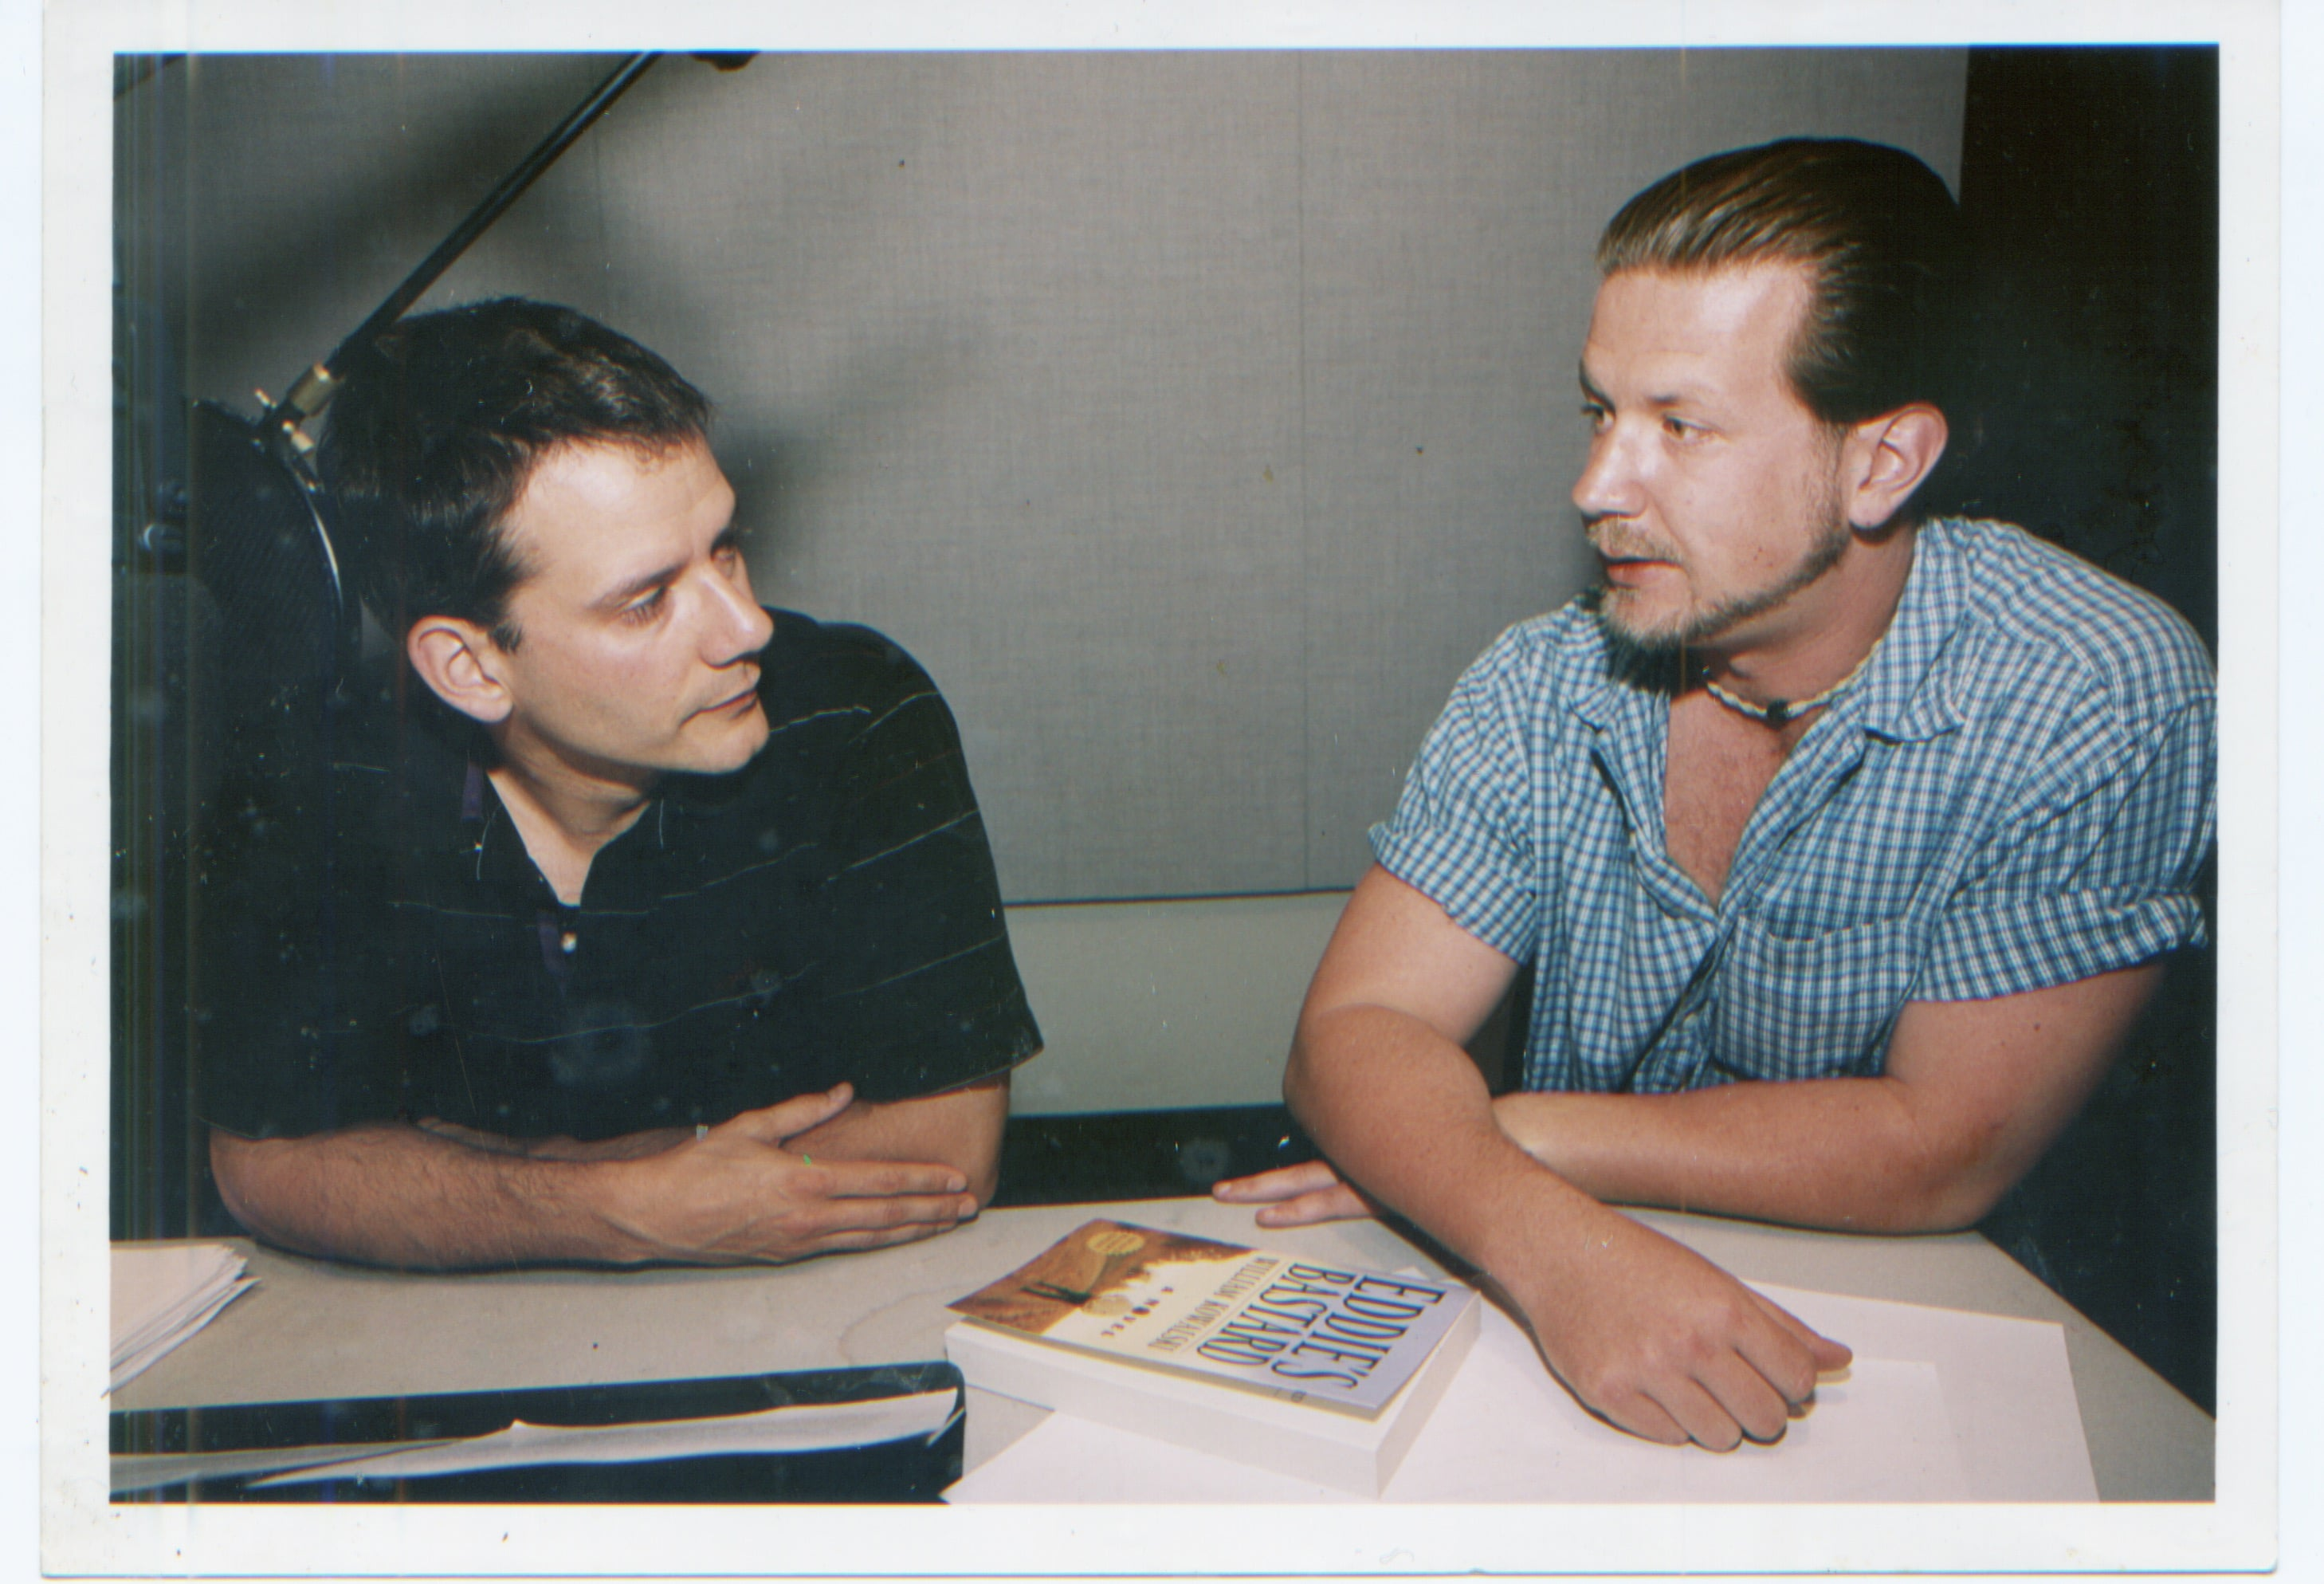 Campbell Scott and William Kowalski